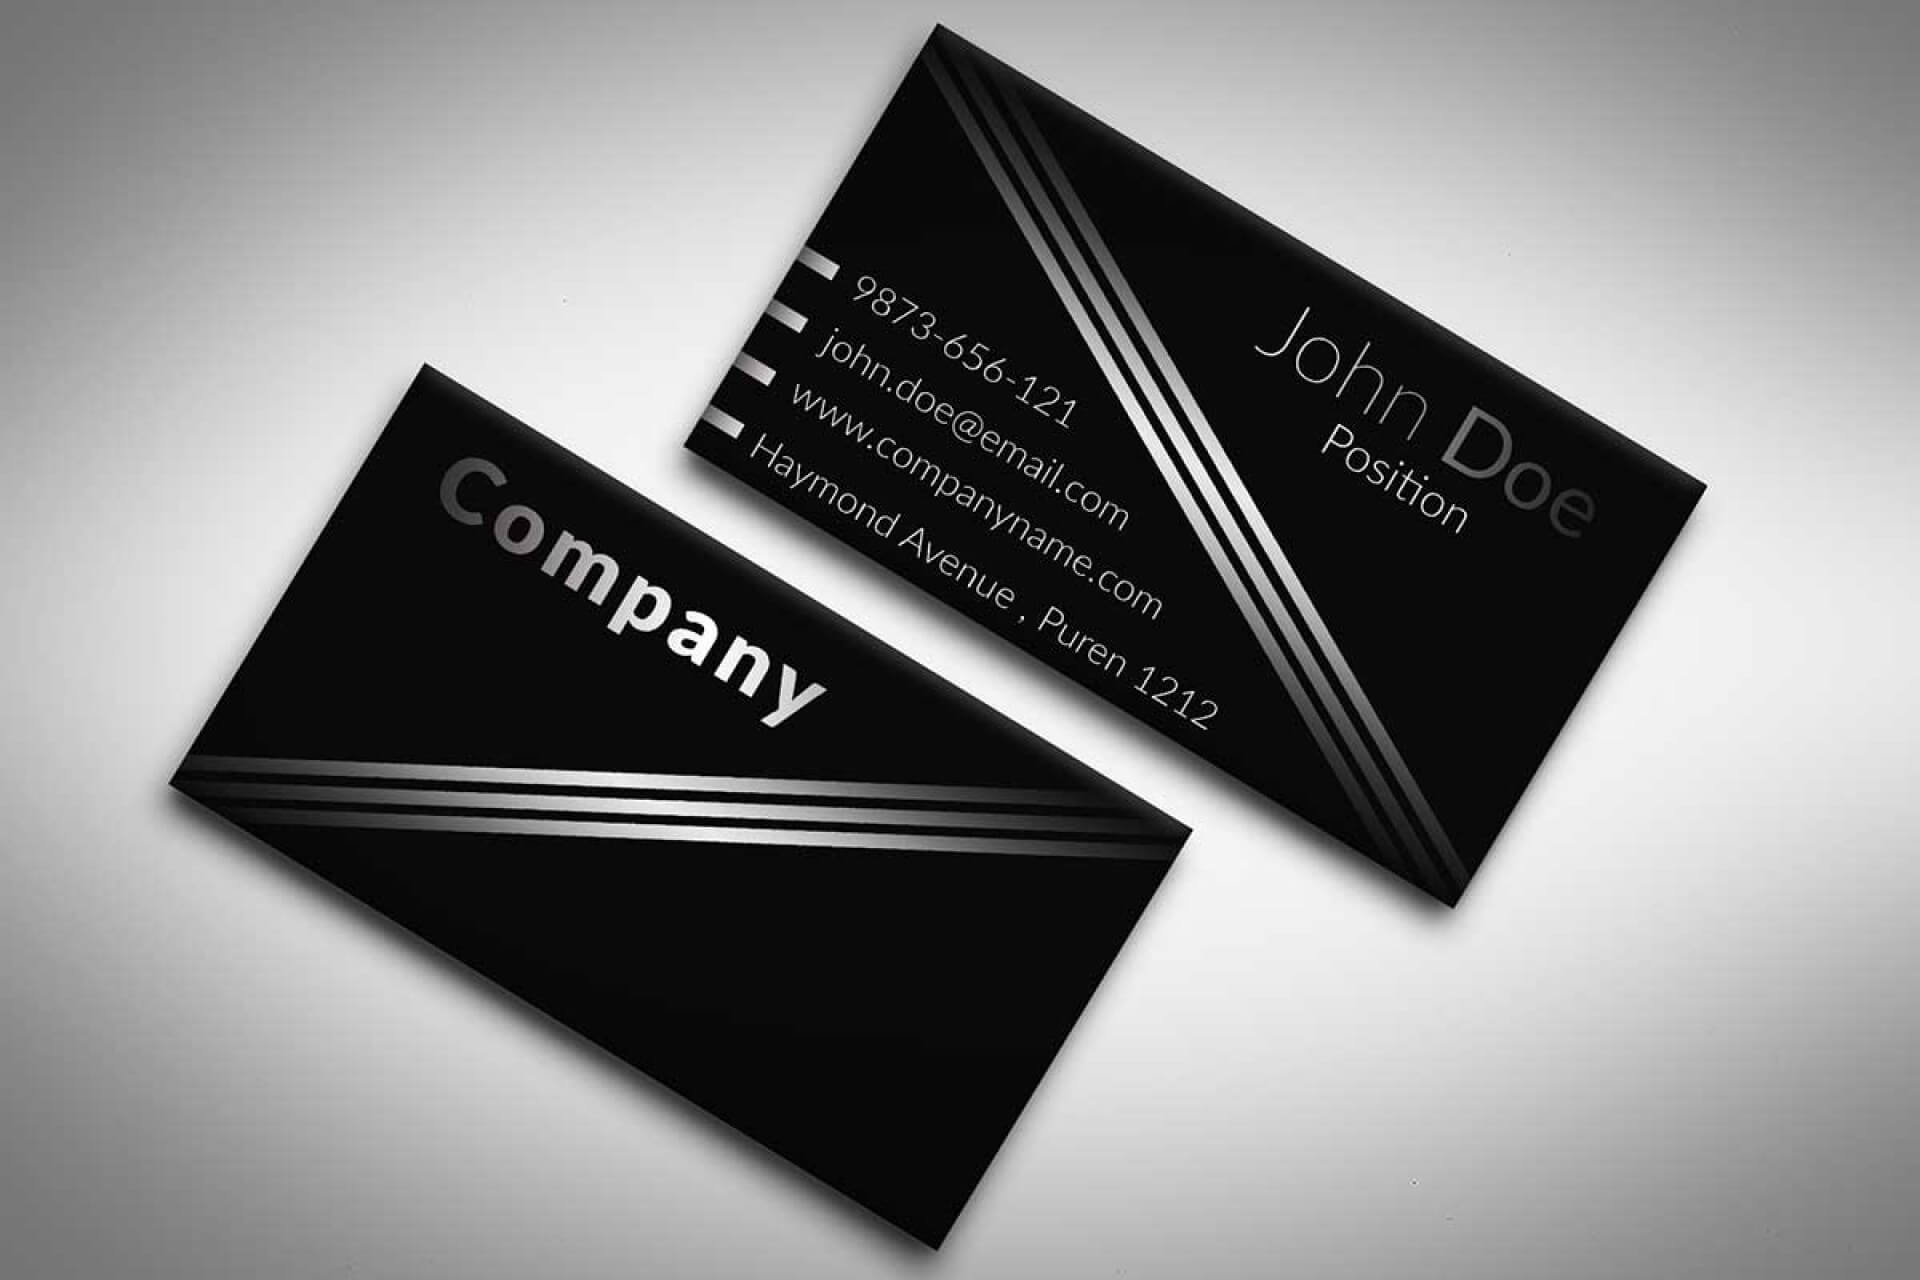 001 Template Ideas Business Cards Free Templates Impressive Pertaining To Black And White Business Cards Templates Free